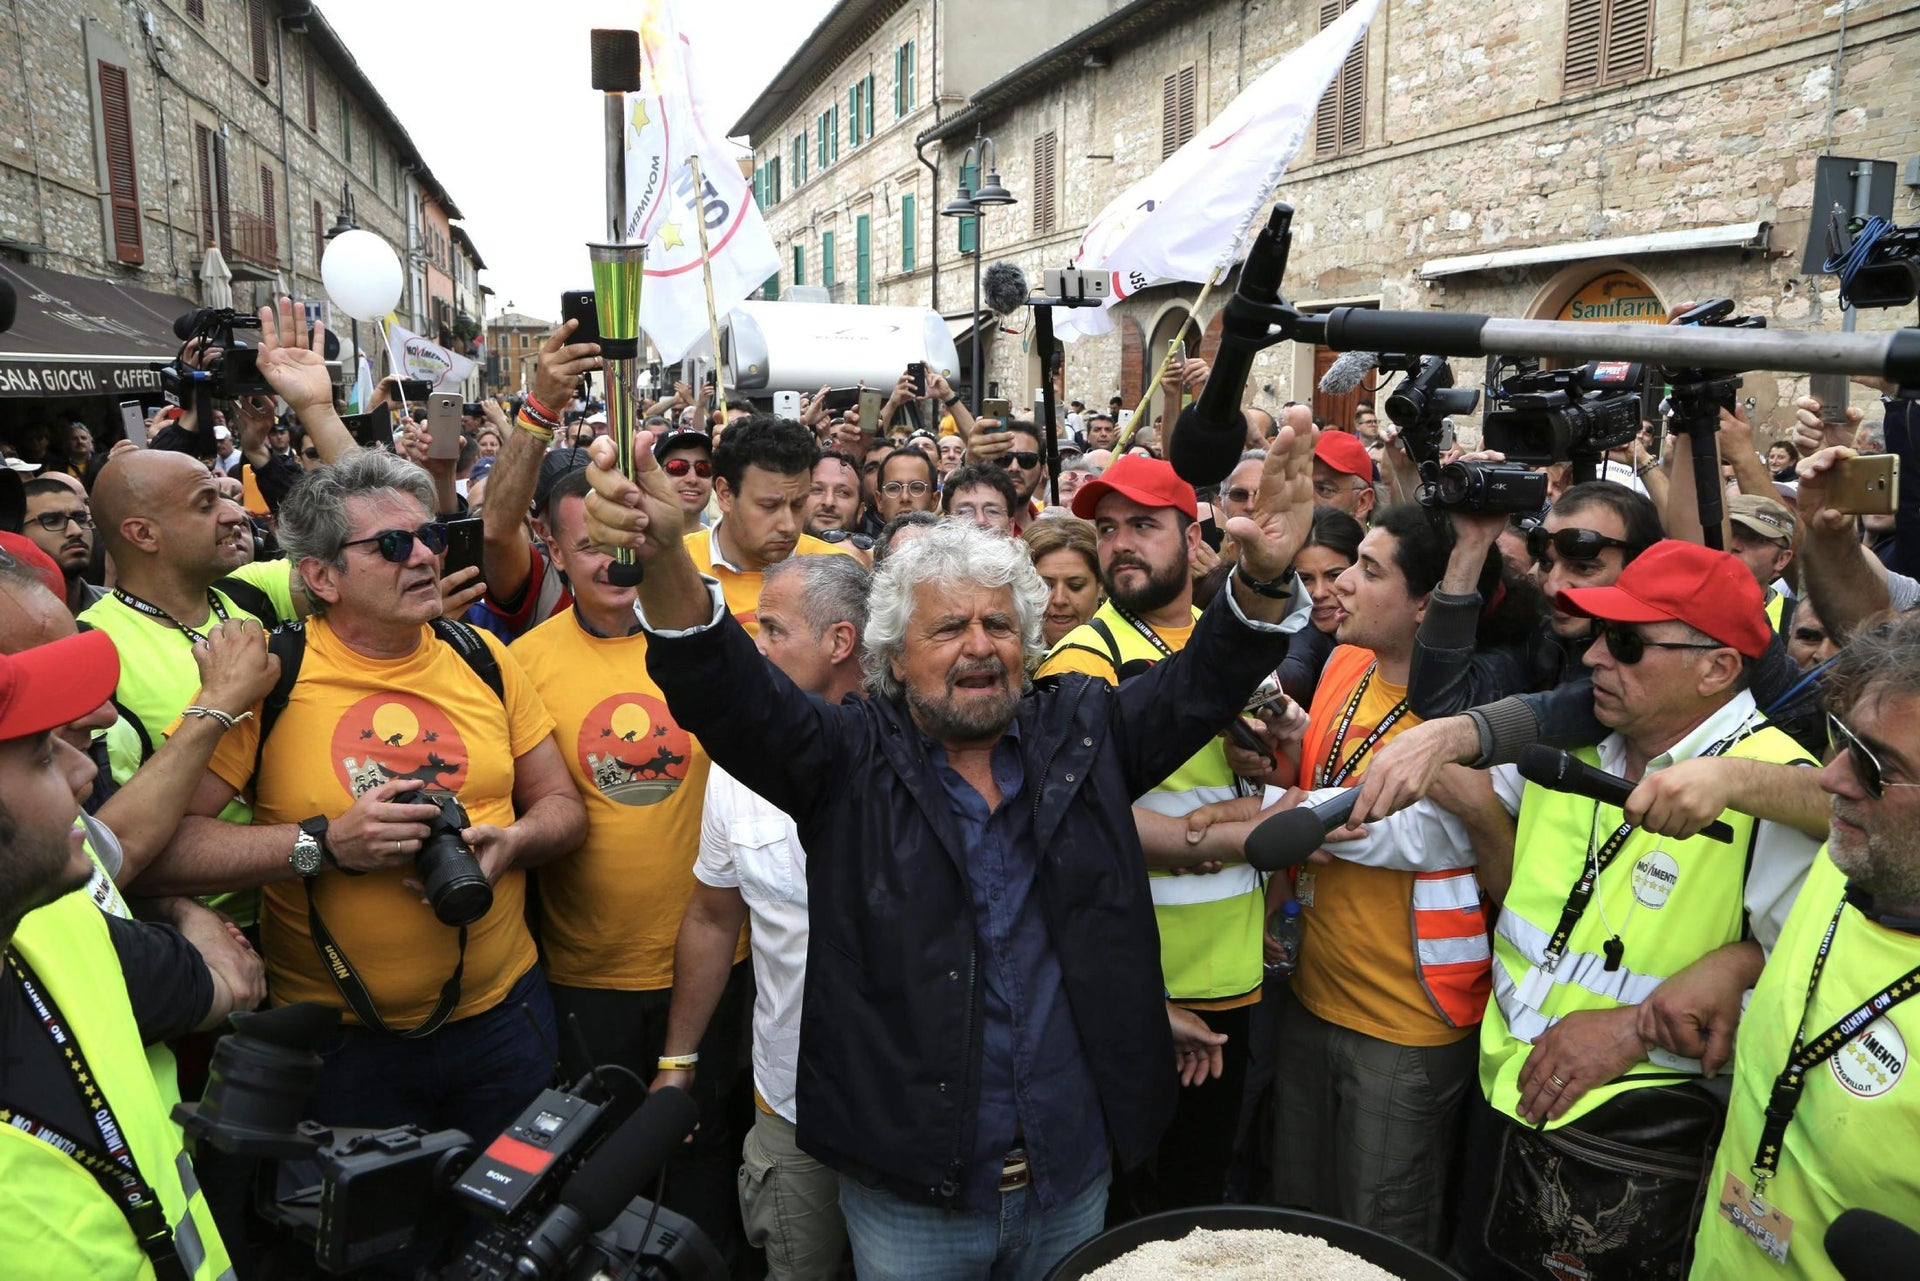 Italian Five Stars Movement's leader Beppe Grillo holds a torch as he takes part in a march from Perugia to Assisi, Italy, May 20, 2017.